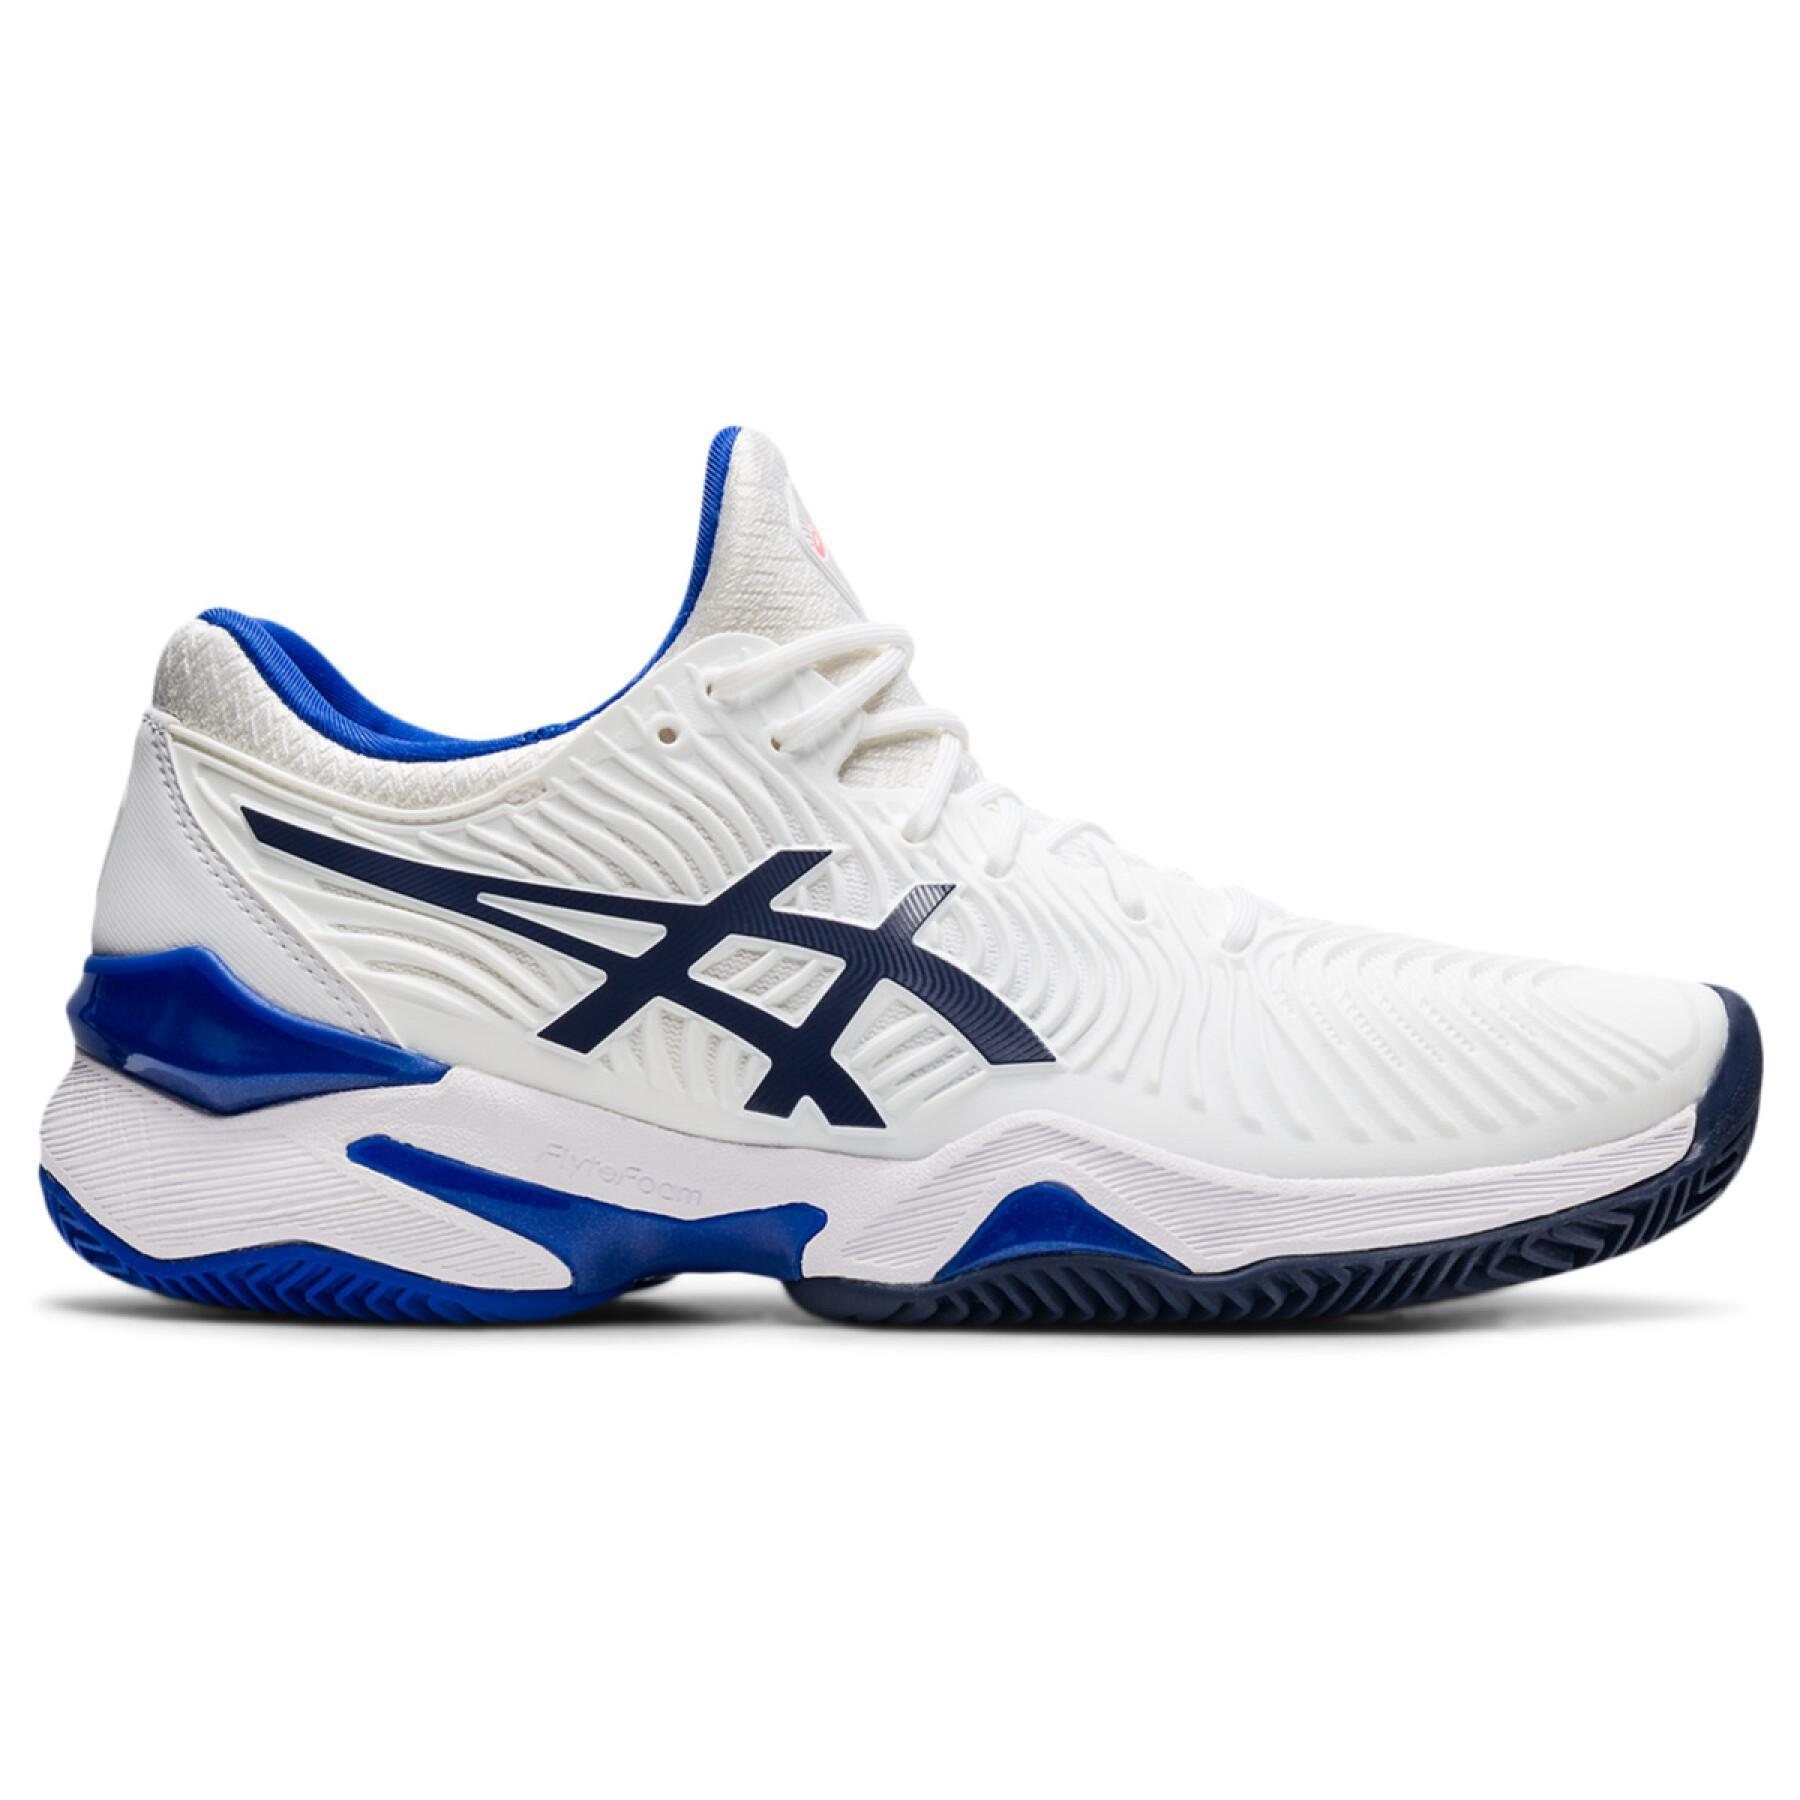 Women's shoes Asics Court Ff 2 Clay